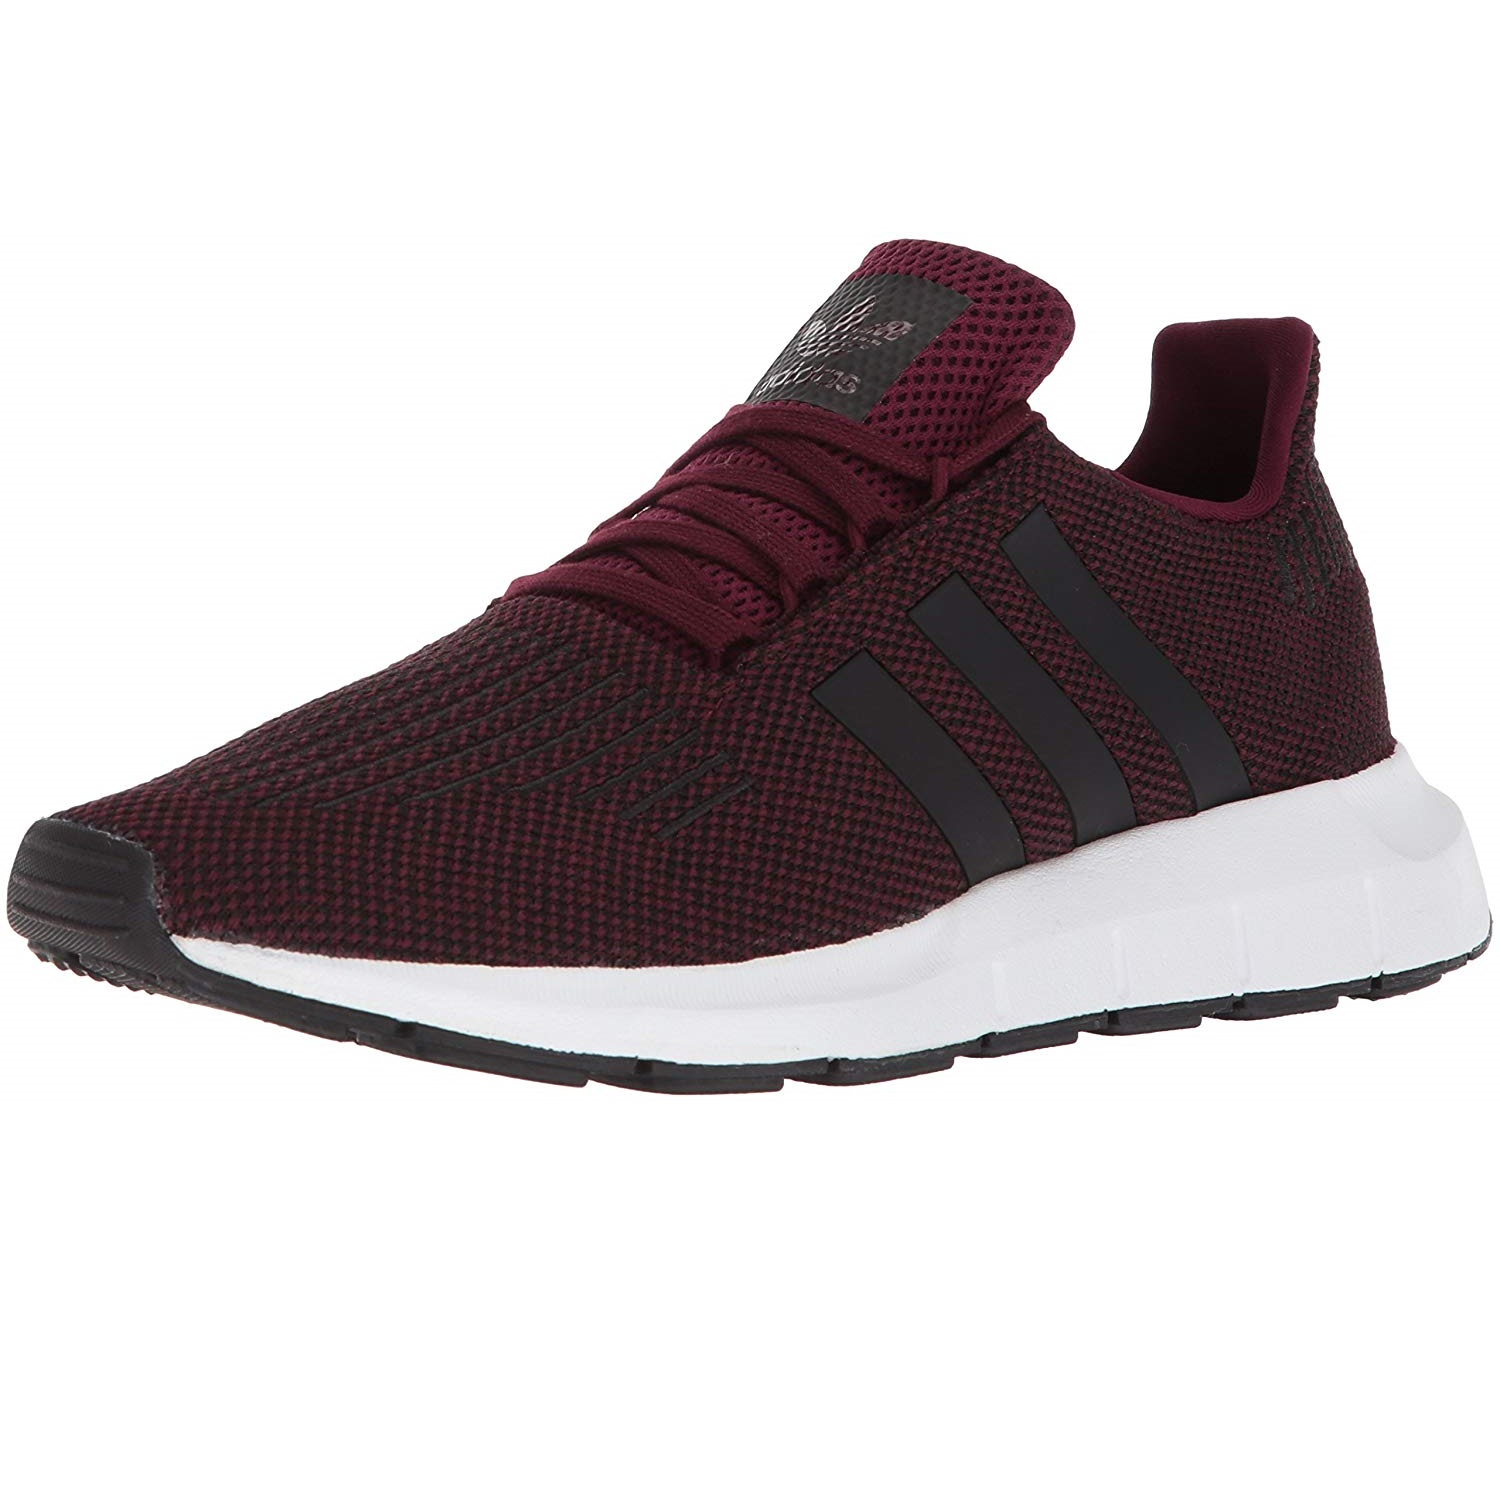 1343ab669 Adidas Swift Run  To Buy or Not in 2019